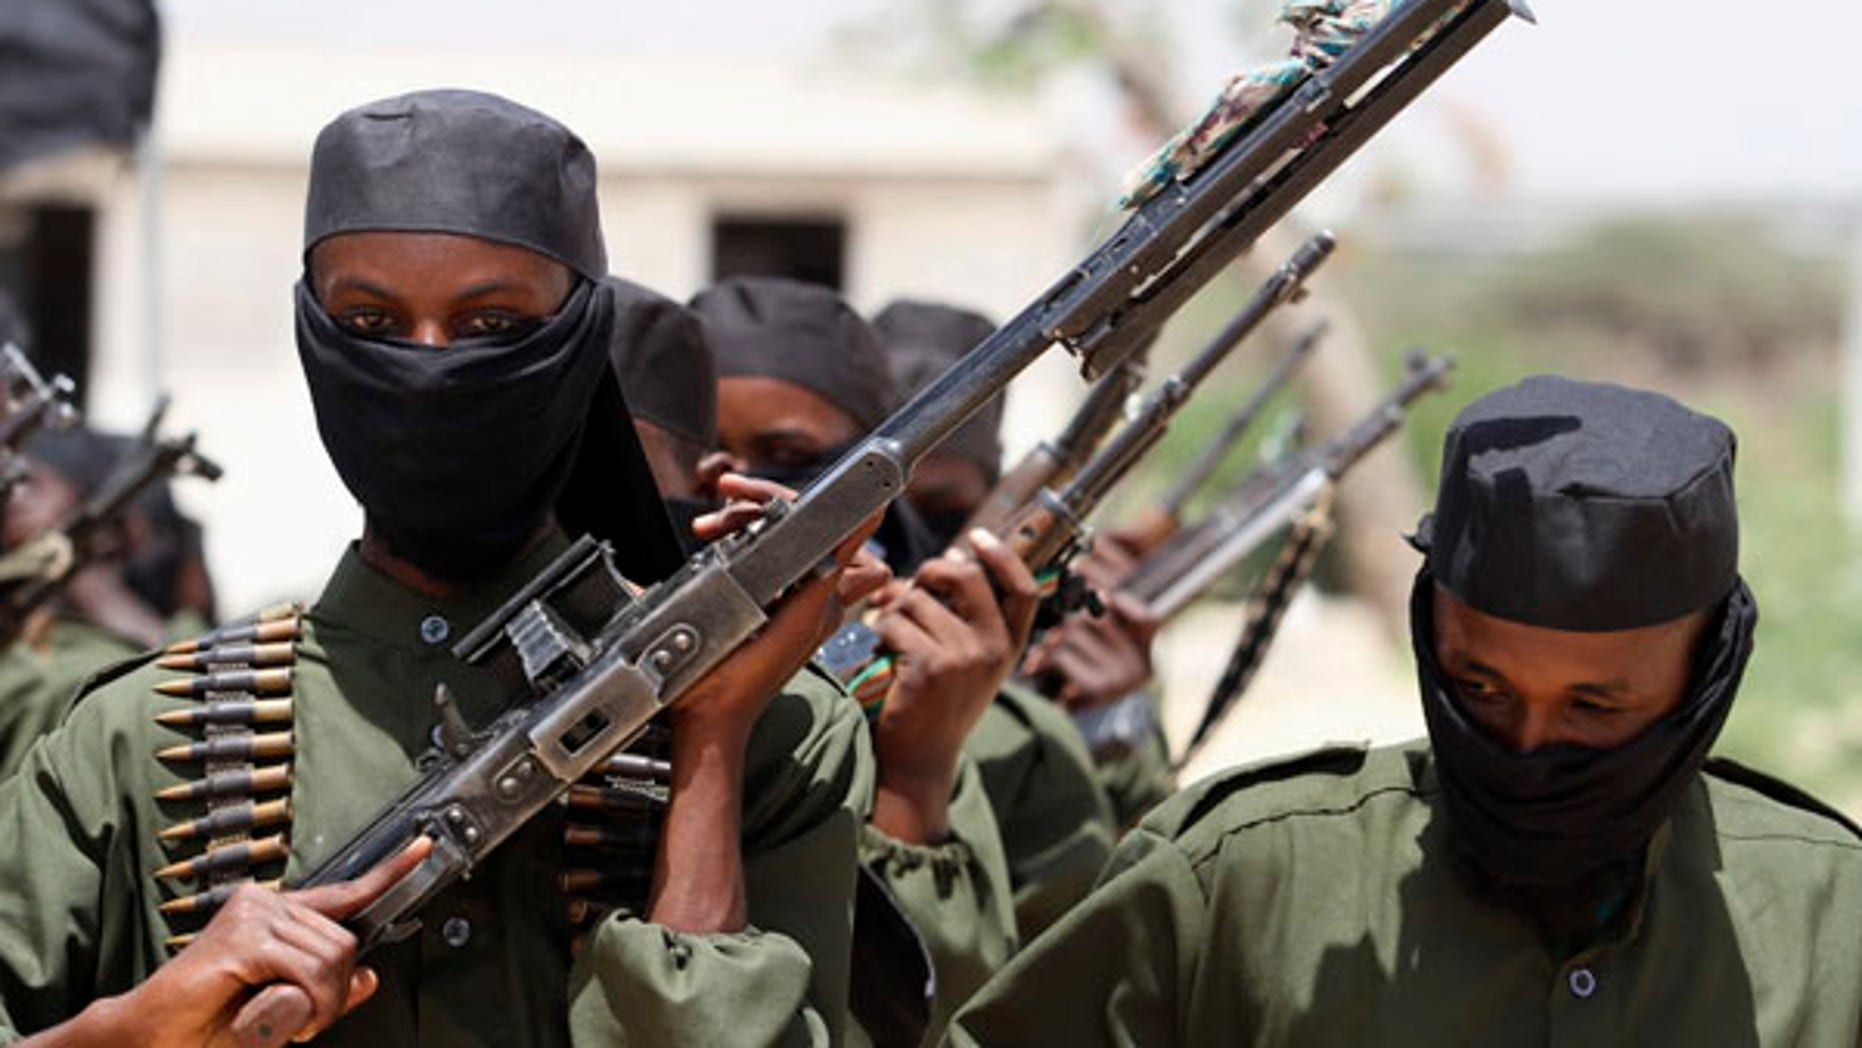 New recruits from the al-Shabaab terror group march during a parade.